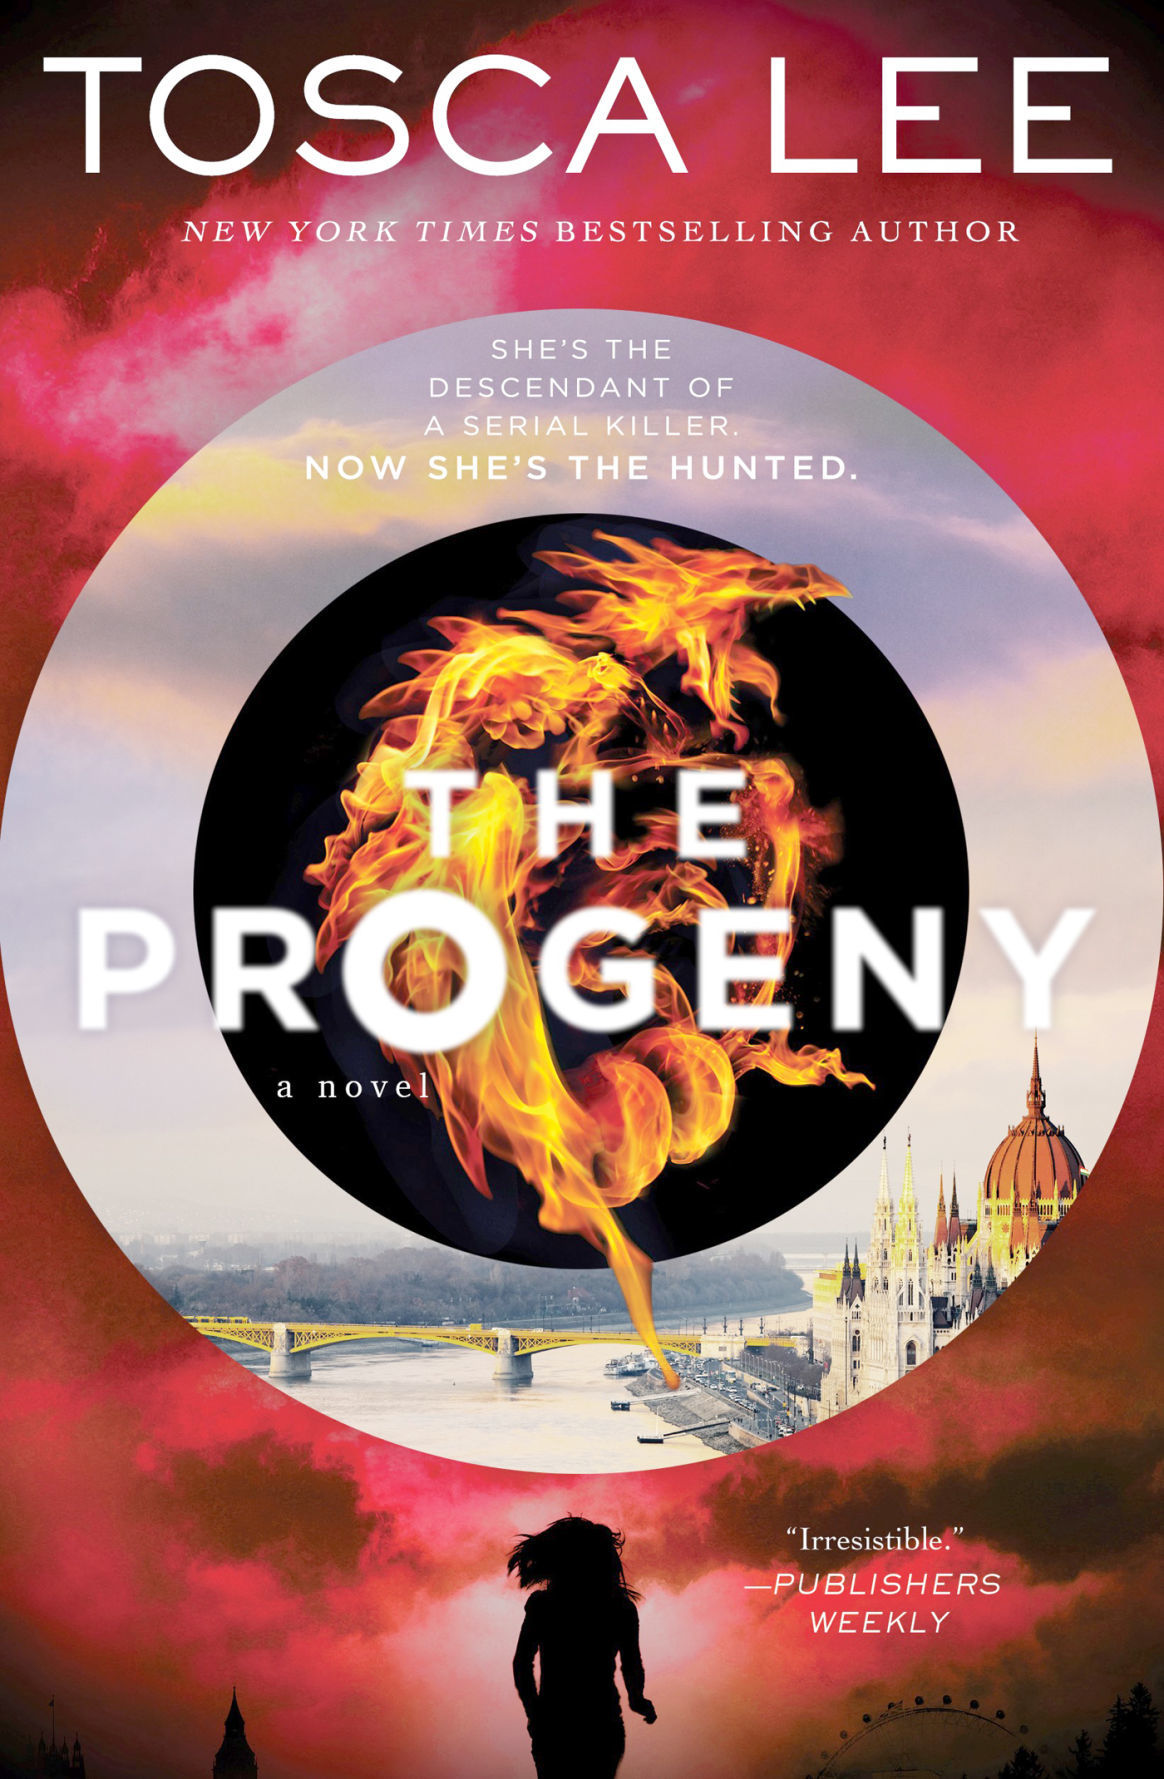 Tosca Lee book The Progeny